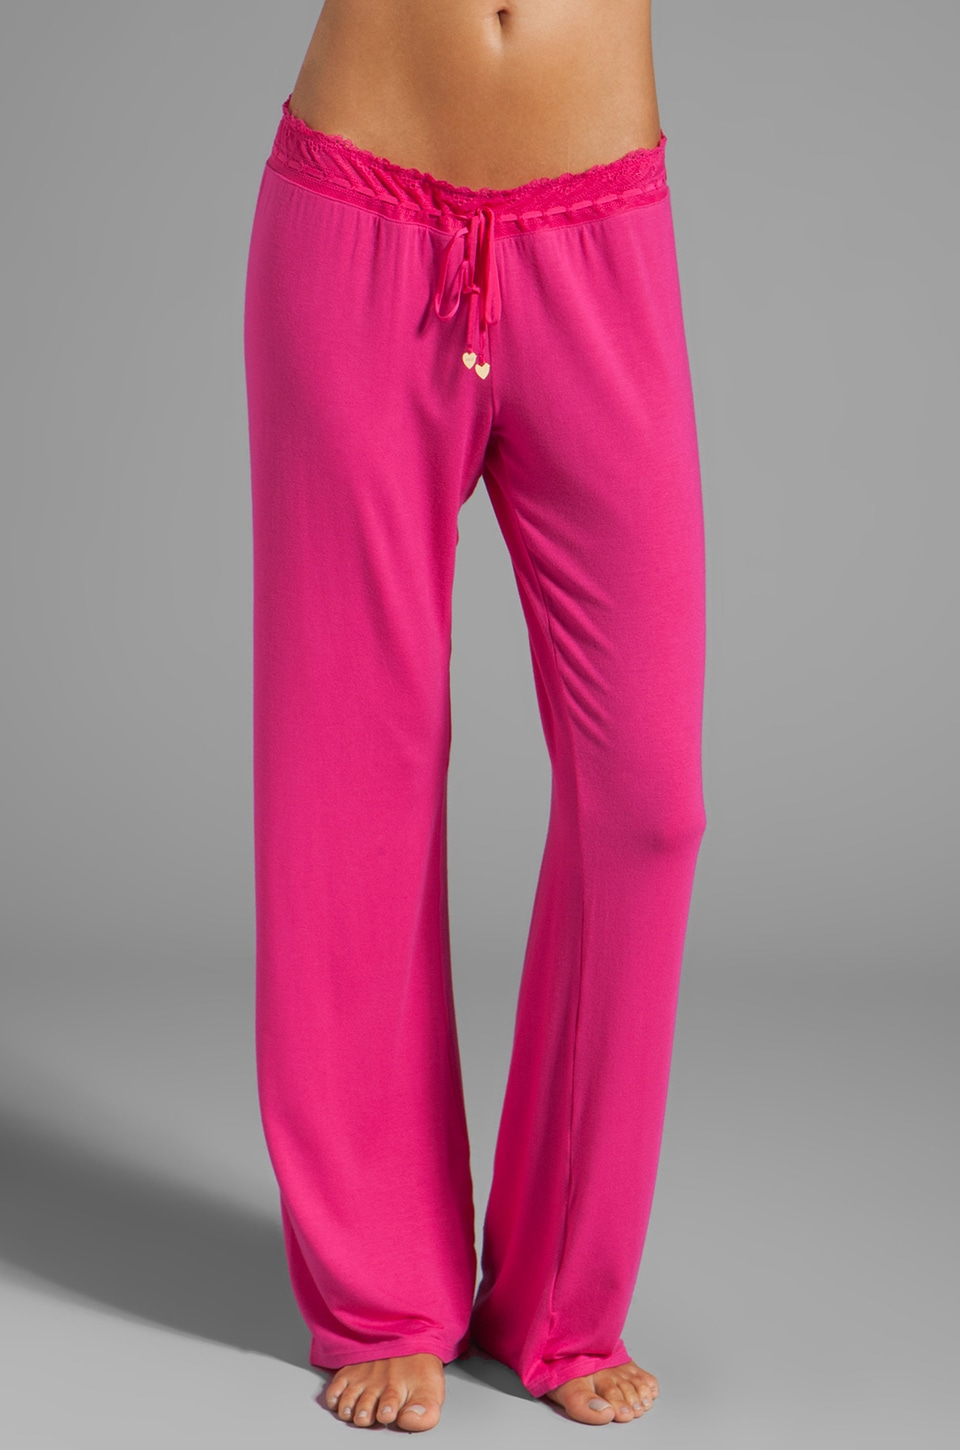 Juicy Couture Sleep Essential Pant in Lychee